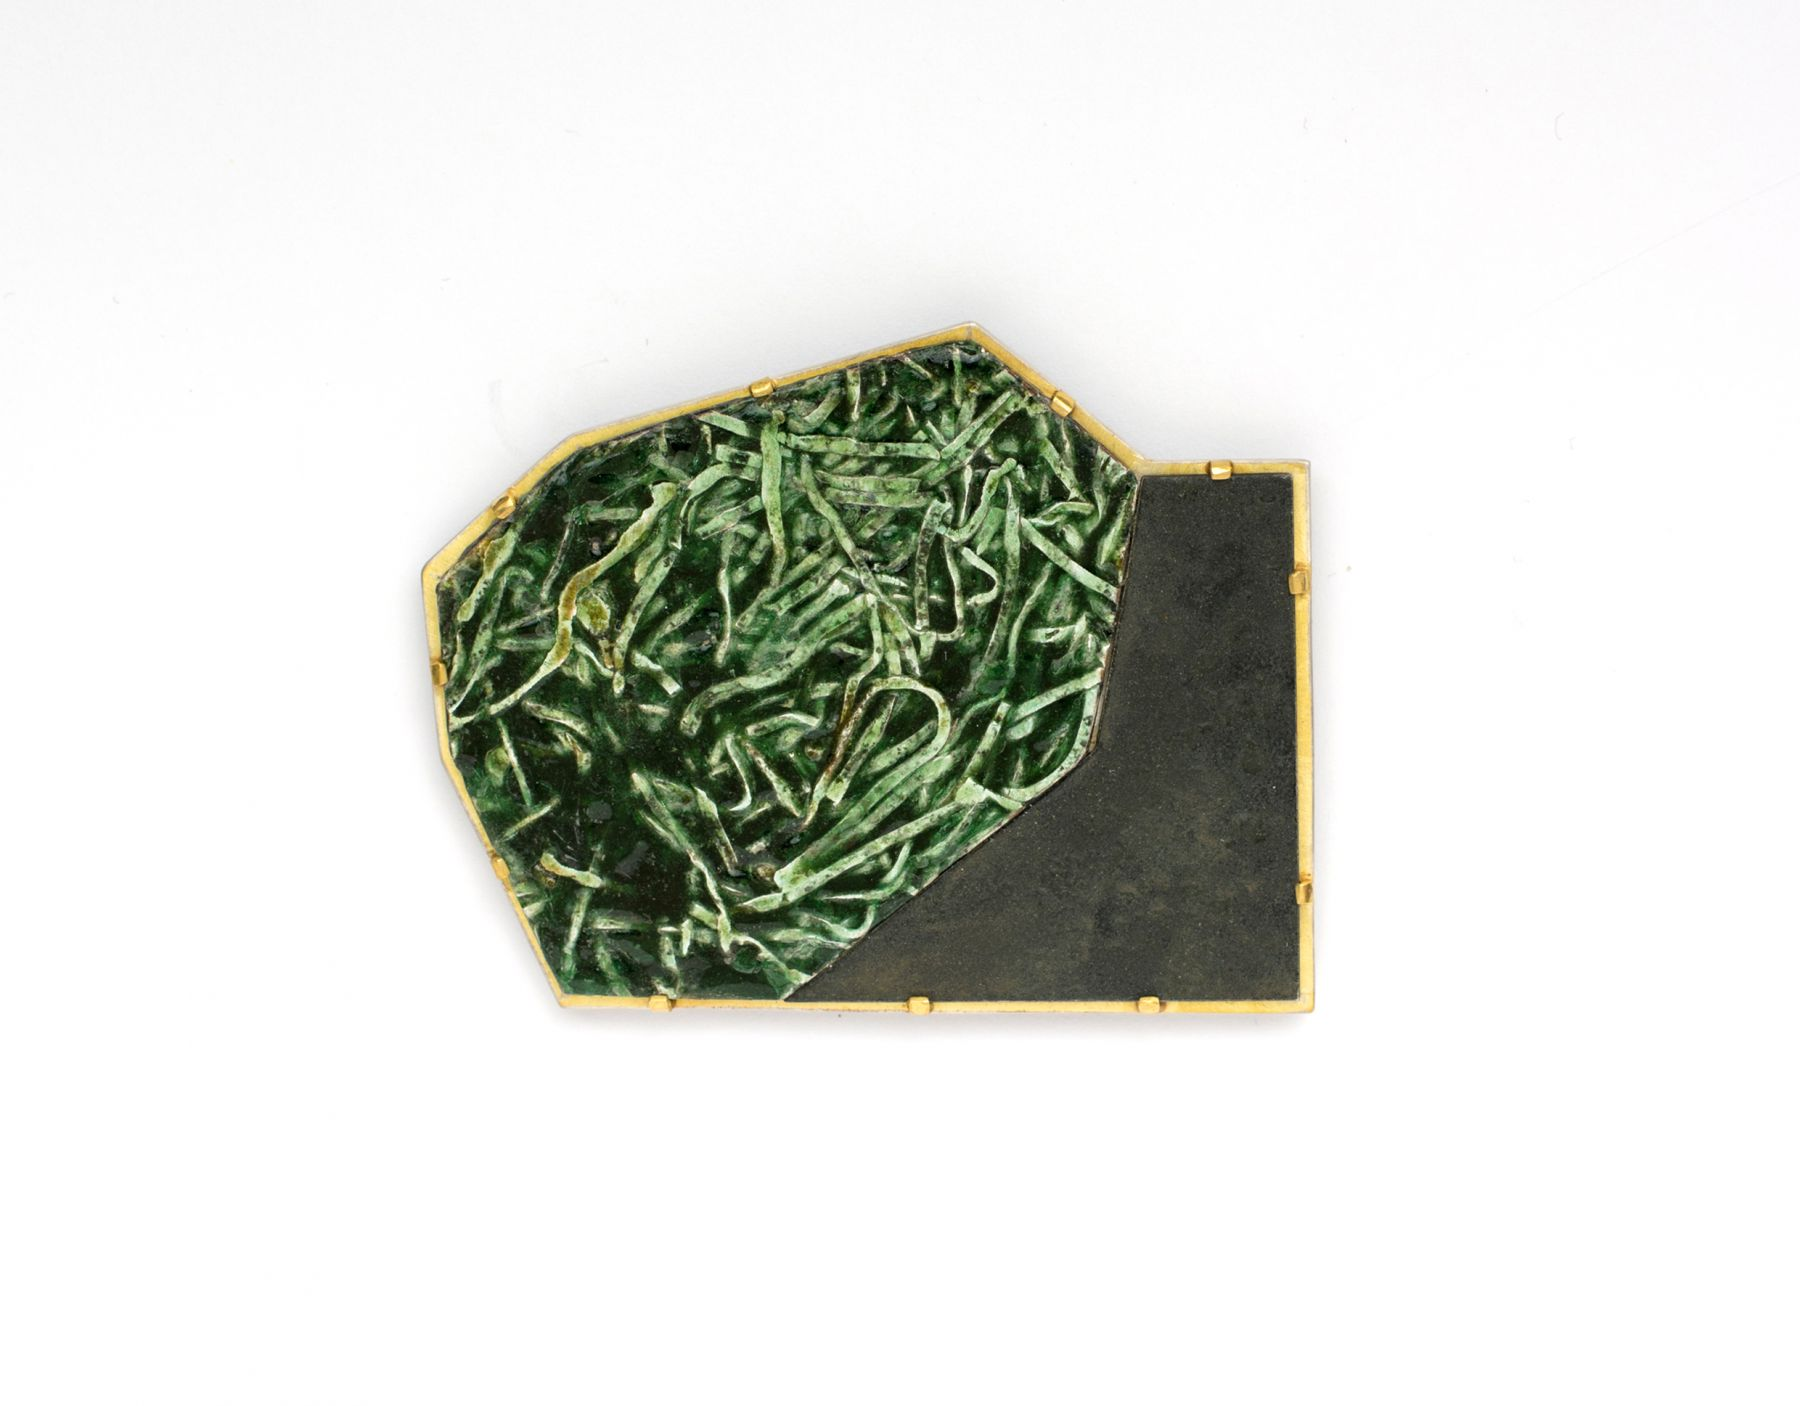 Ike Jünger germany, brooch